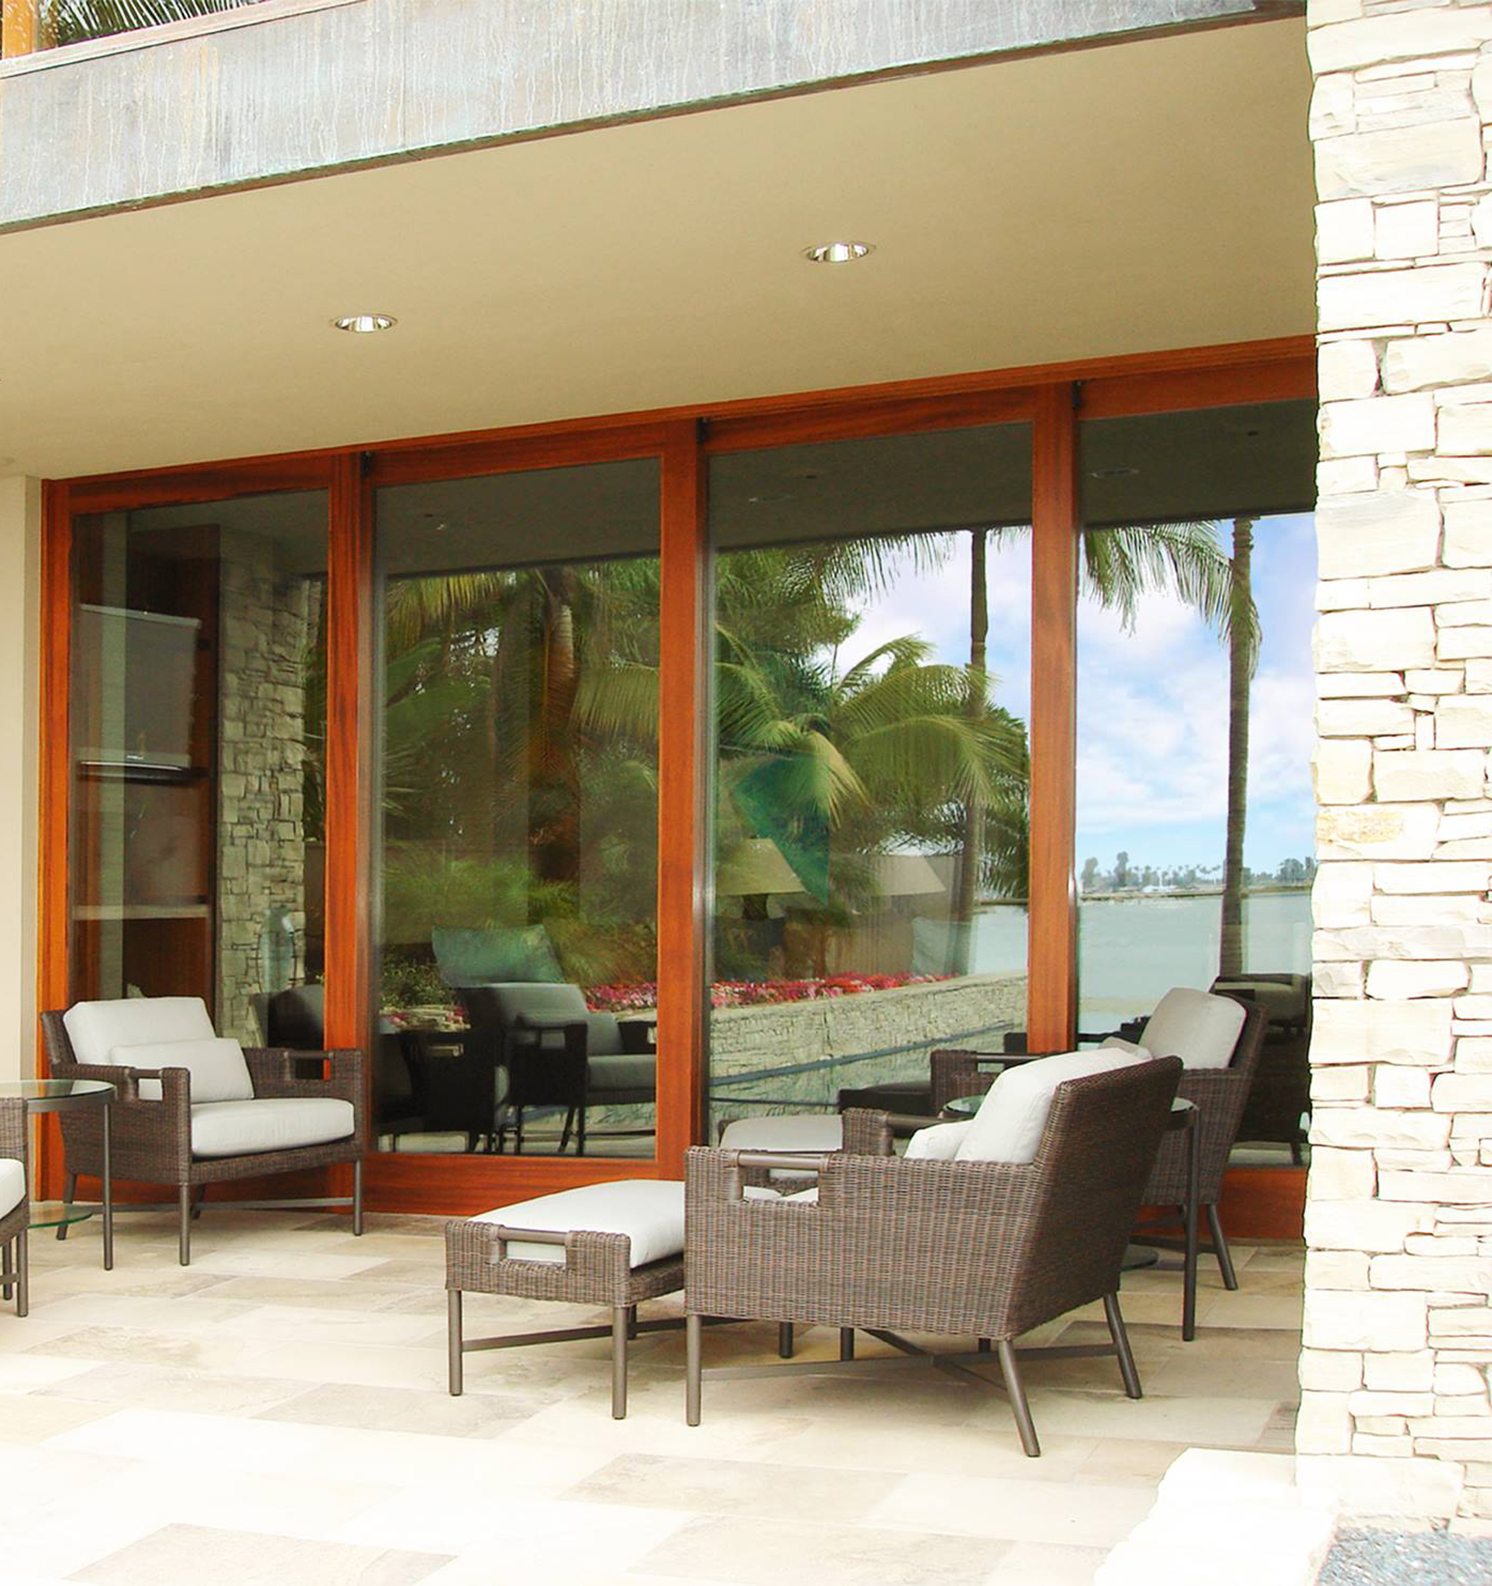 Lift-and-slide exterior glass sliding doors from The Folding Door Store.